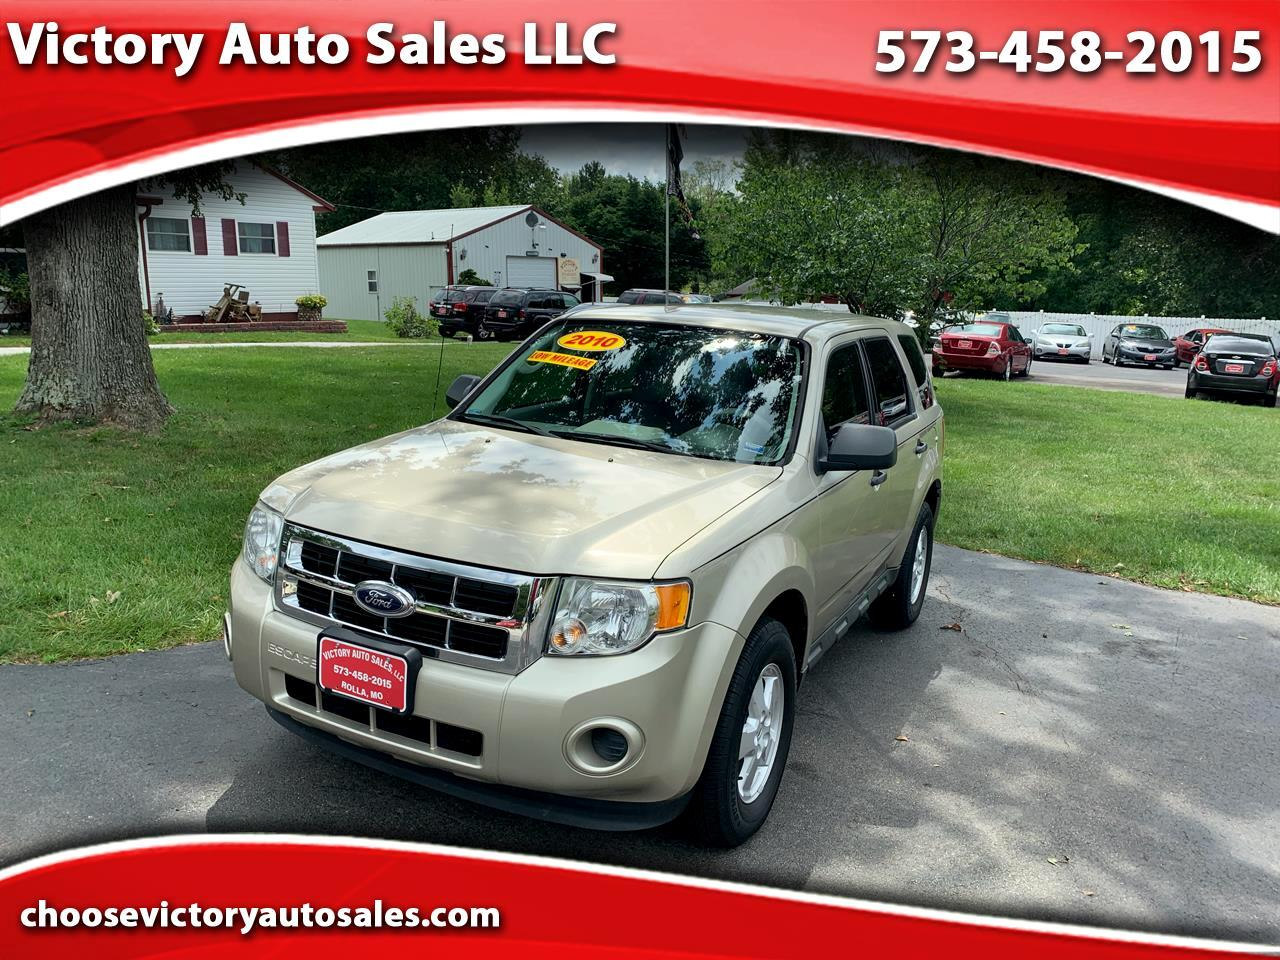 Victory Auto Sales >> Used Cars For Sale Victory Auto Sales Llc